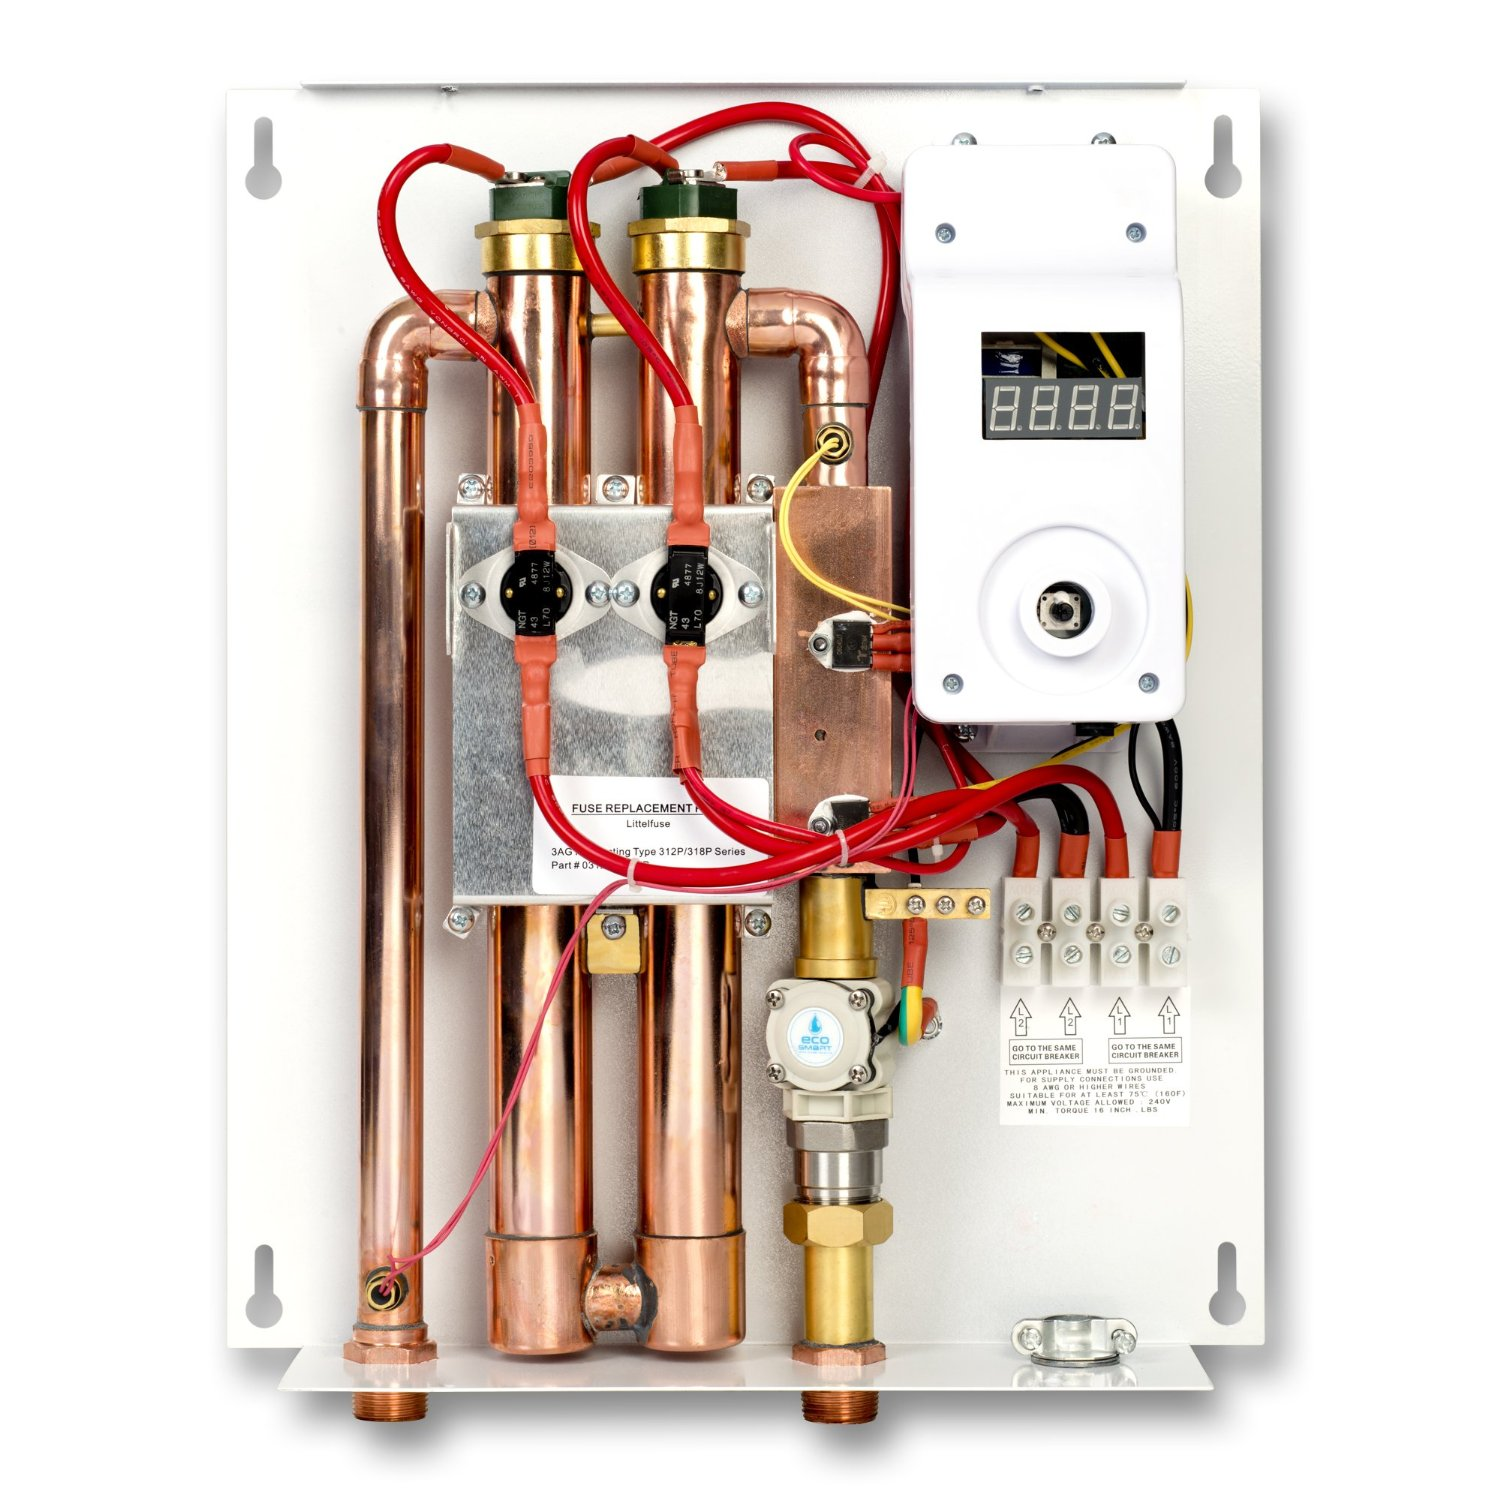 ecosmart eco 18 electric tankless water heater patented self modulating technology